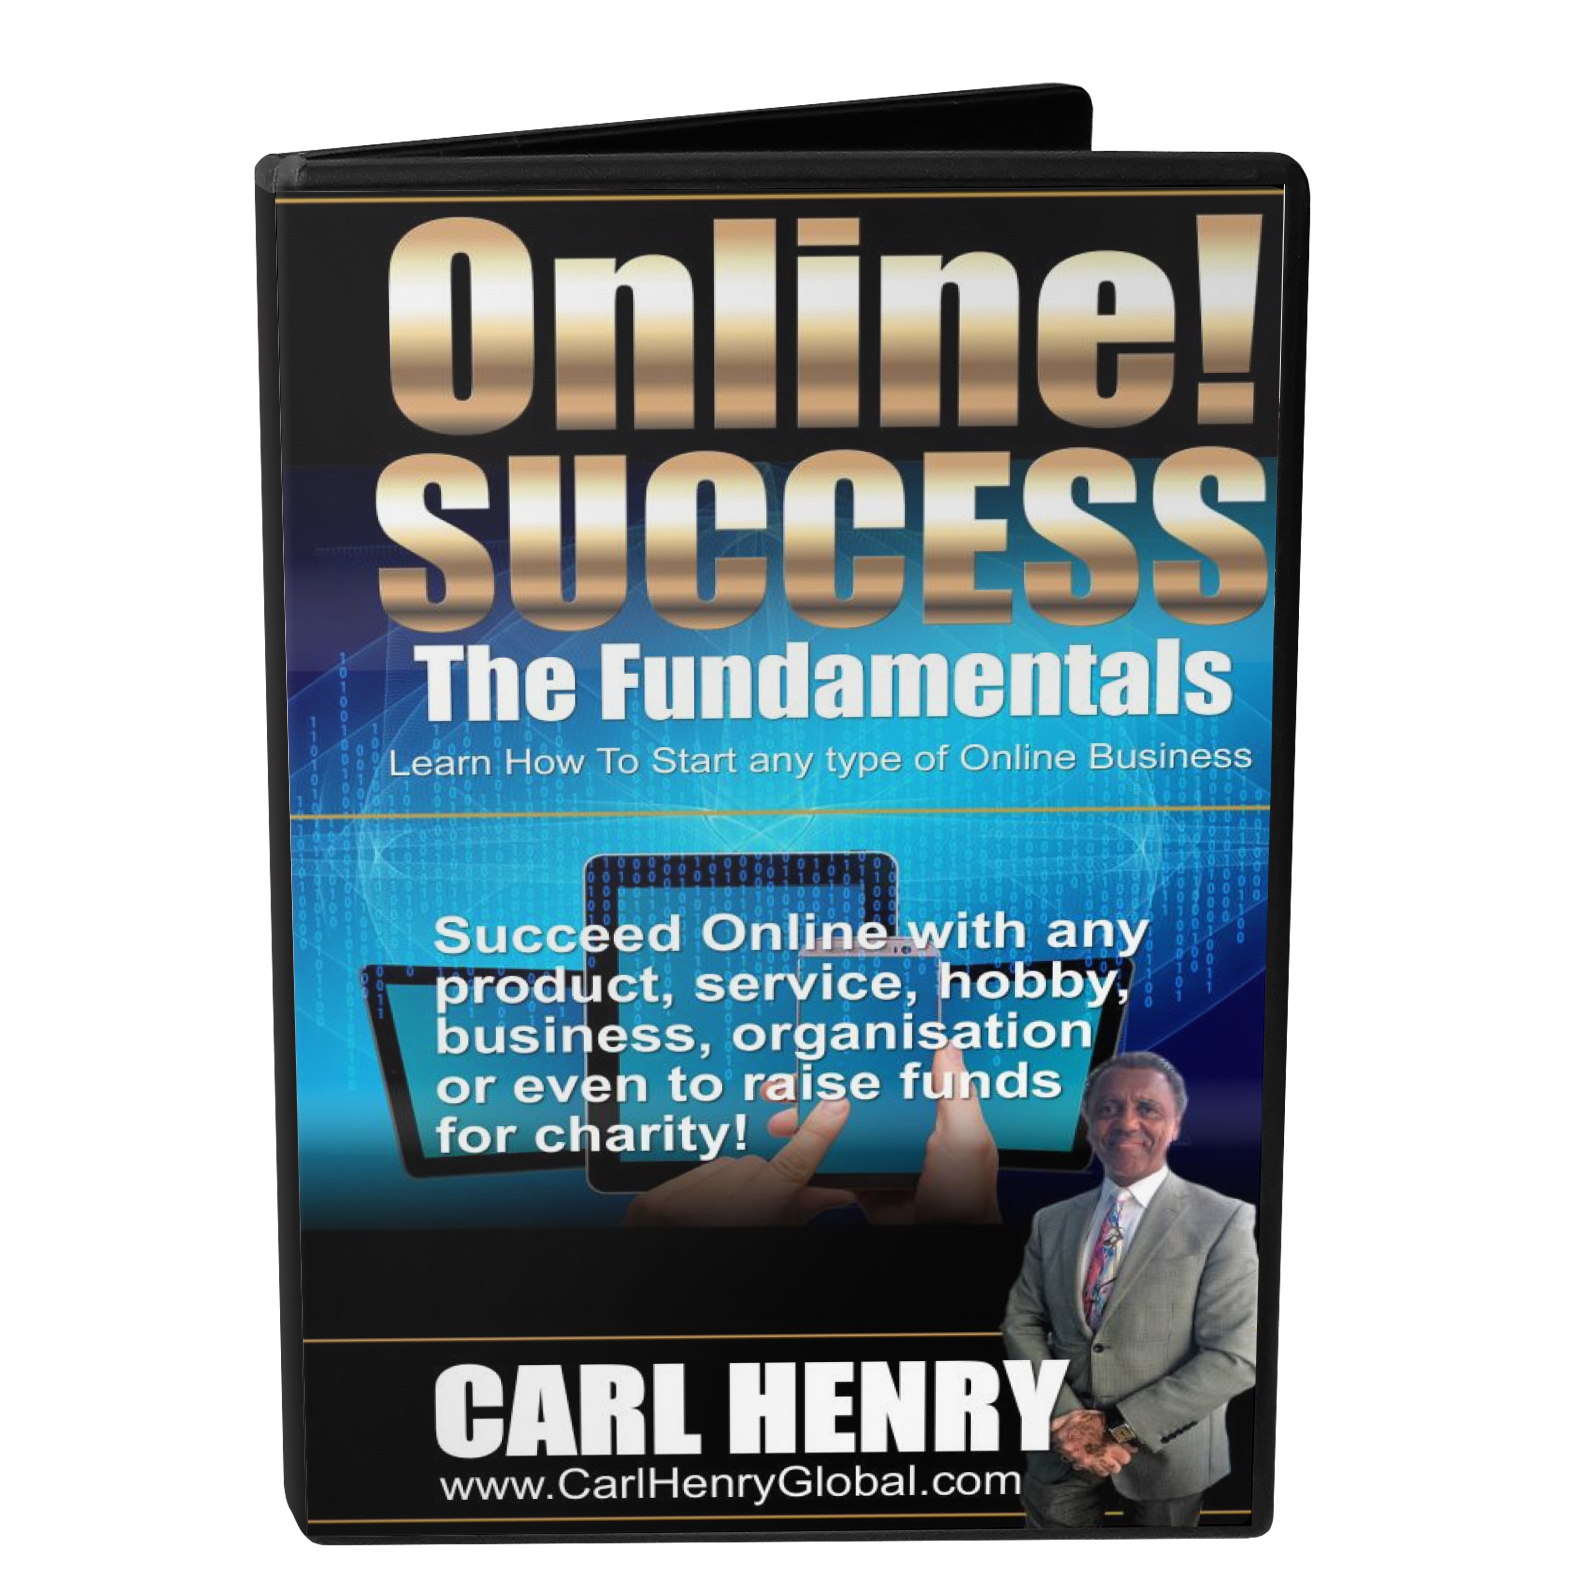 Carl-Henry-ONLINE-SUCCESS-DVD-Box-1595x1595